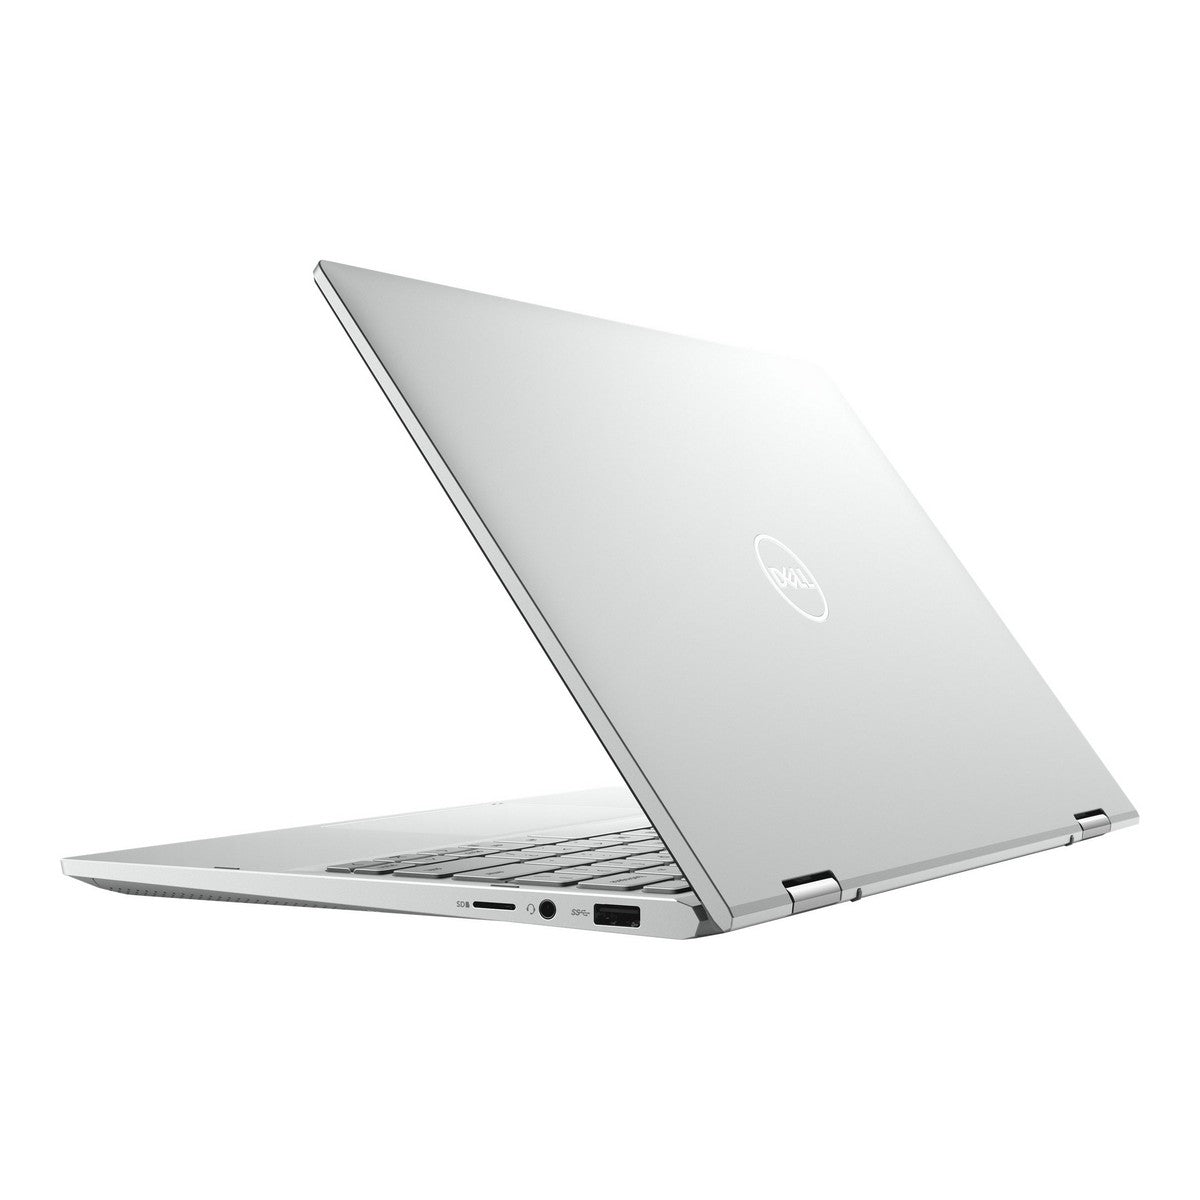 Dell Inspiron 13-7300  2 in 1 Laptop 13.3'' FHD , Intel Core i5 i5-10210U 6M Cache up to 4.2GHz, 8GB RAM, Intel UHD GPU, 512GB SSD, Touchscreen, Windows 10, Platinum Silver